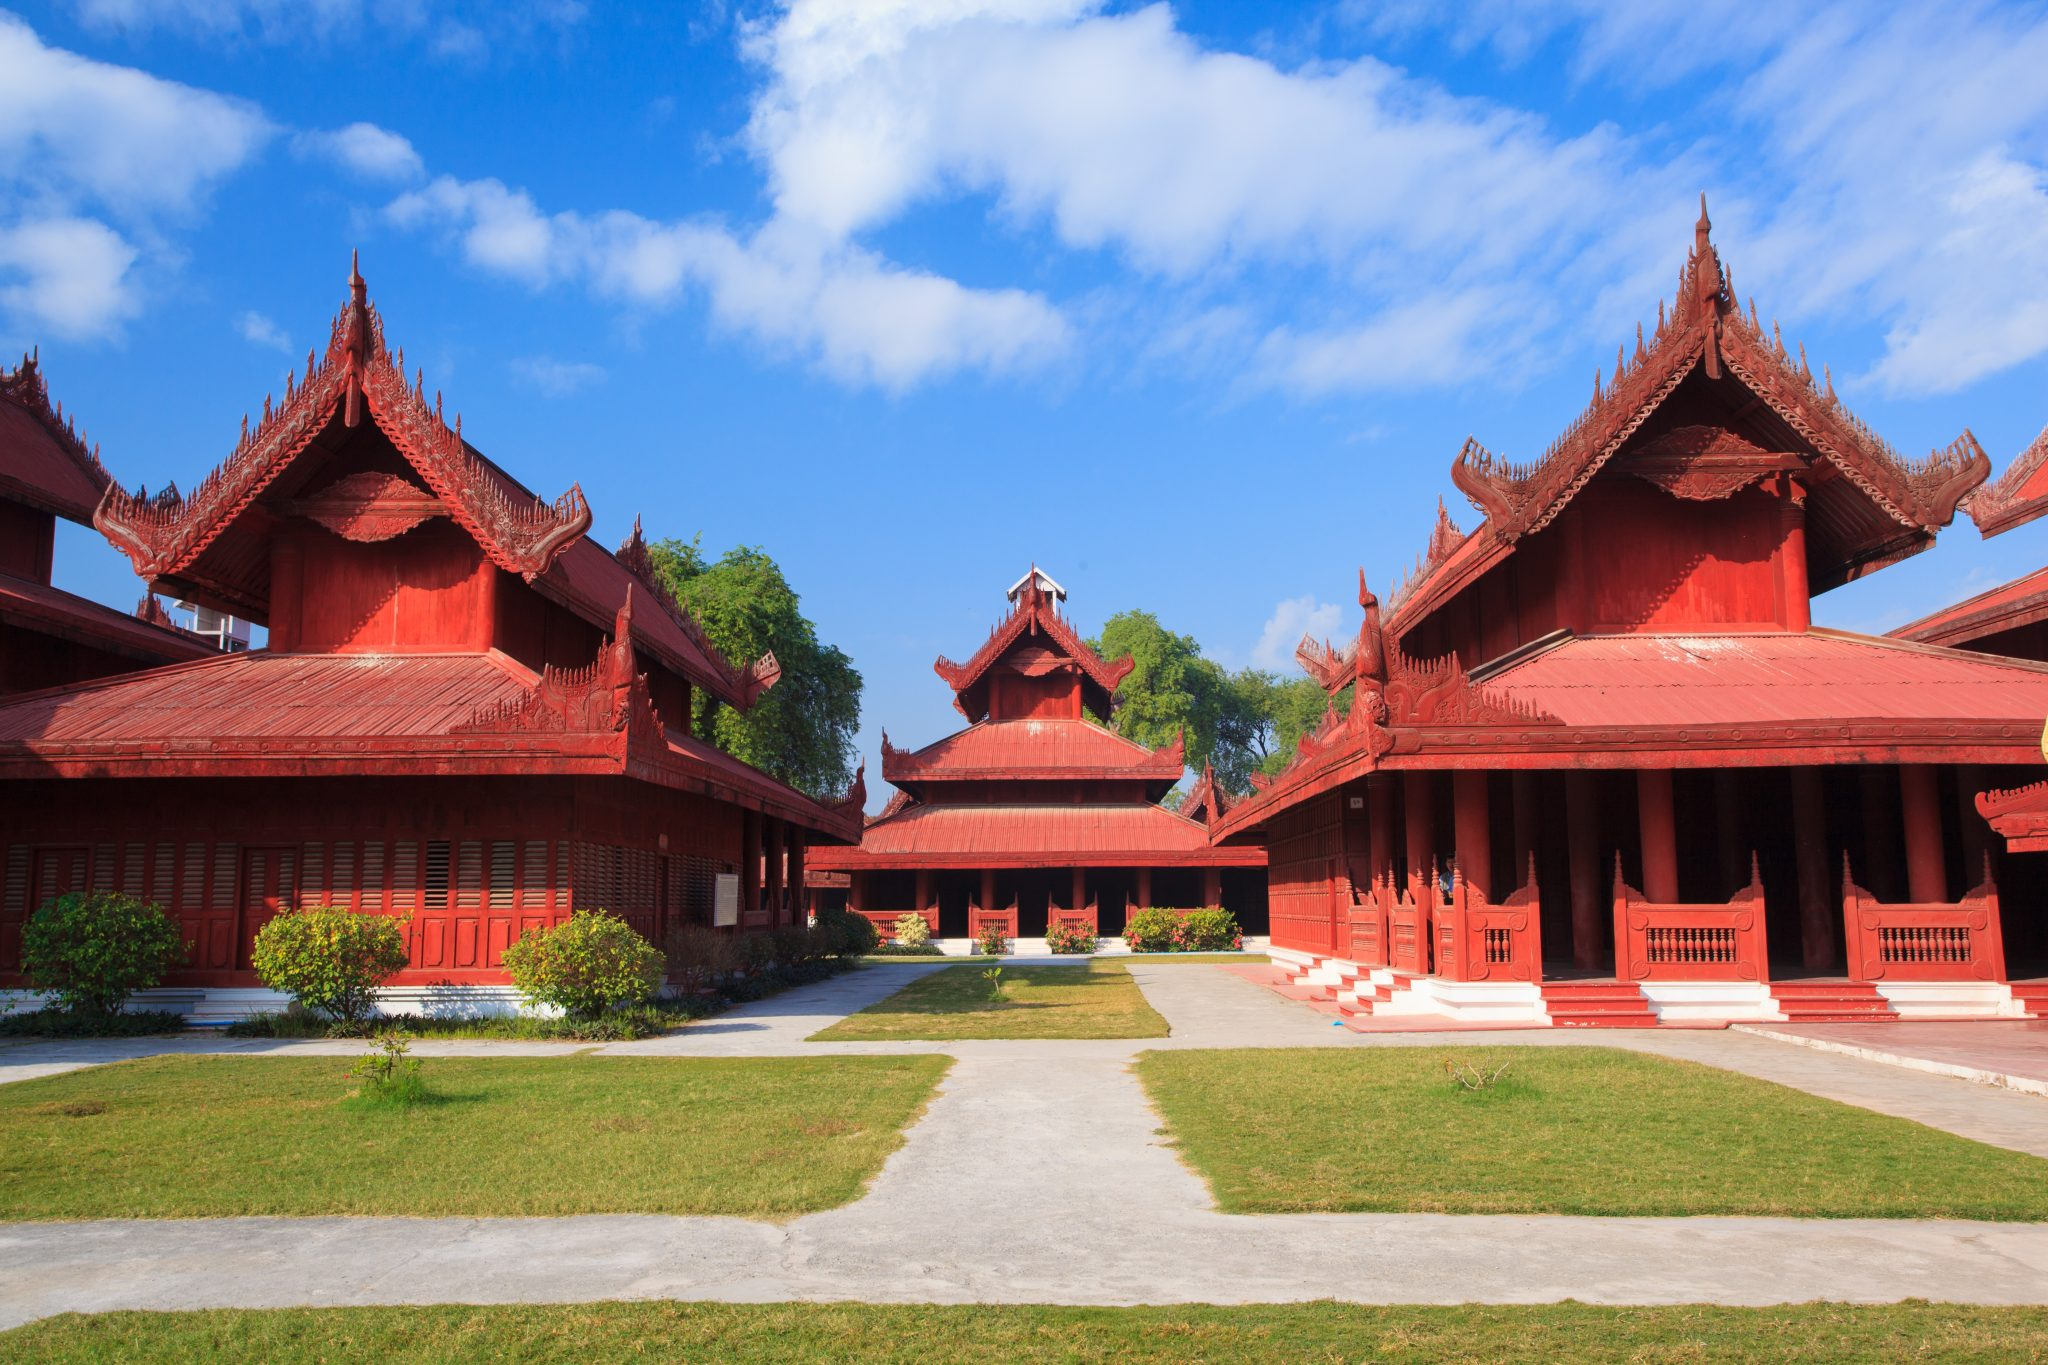 Mandalay Royal Palace and Shwe Inbin Monastery